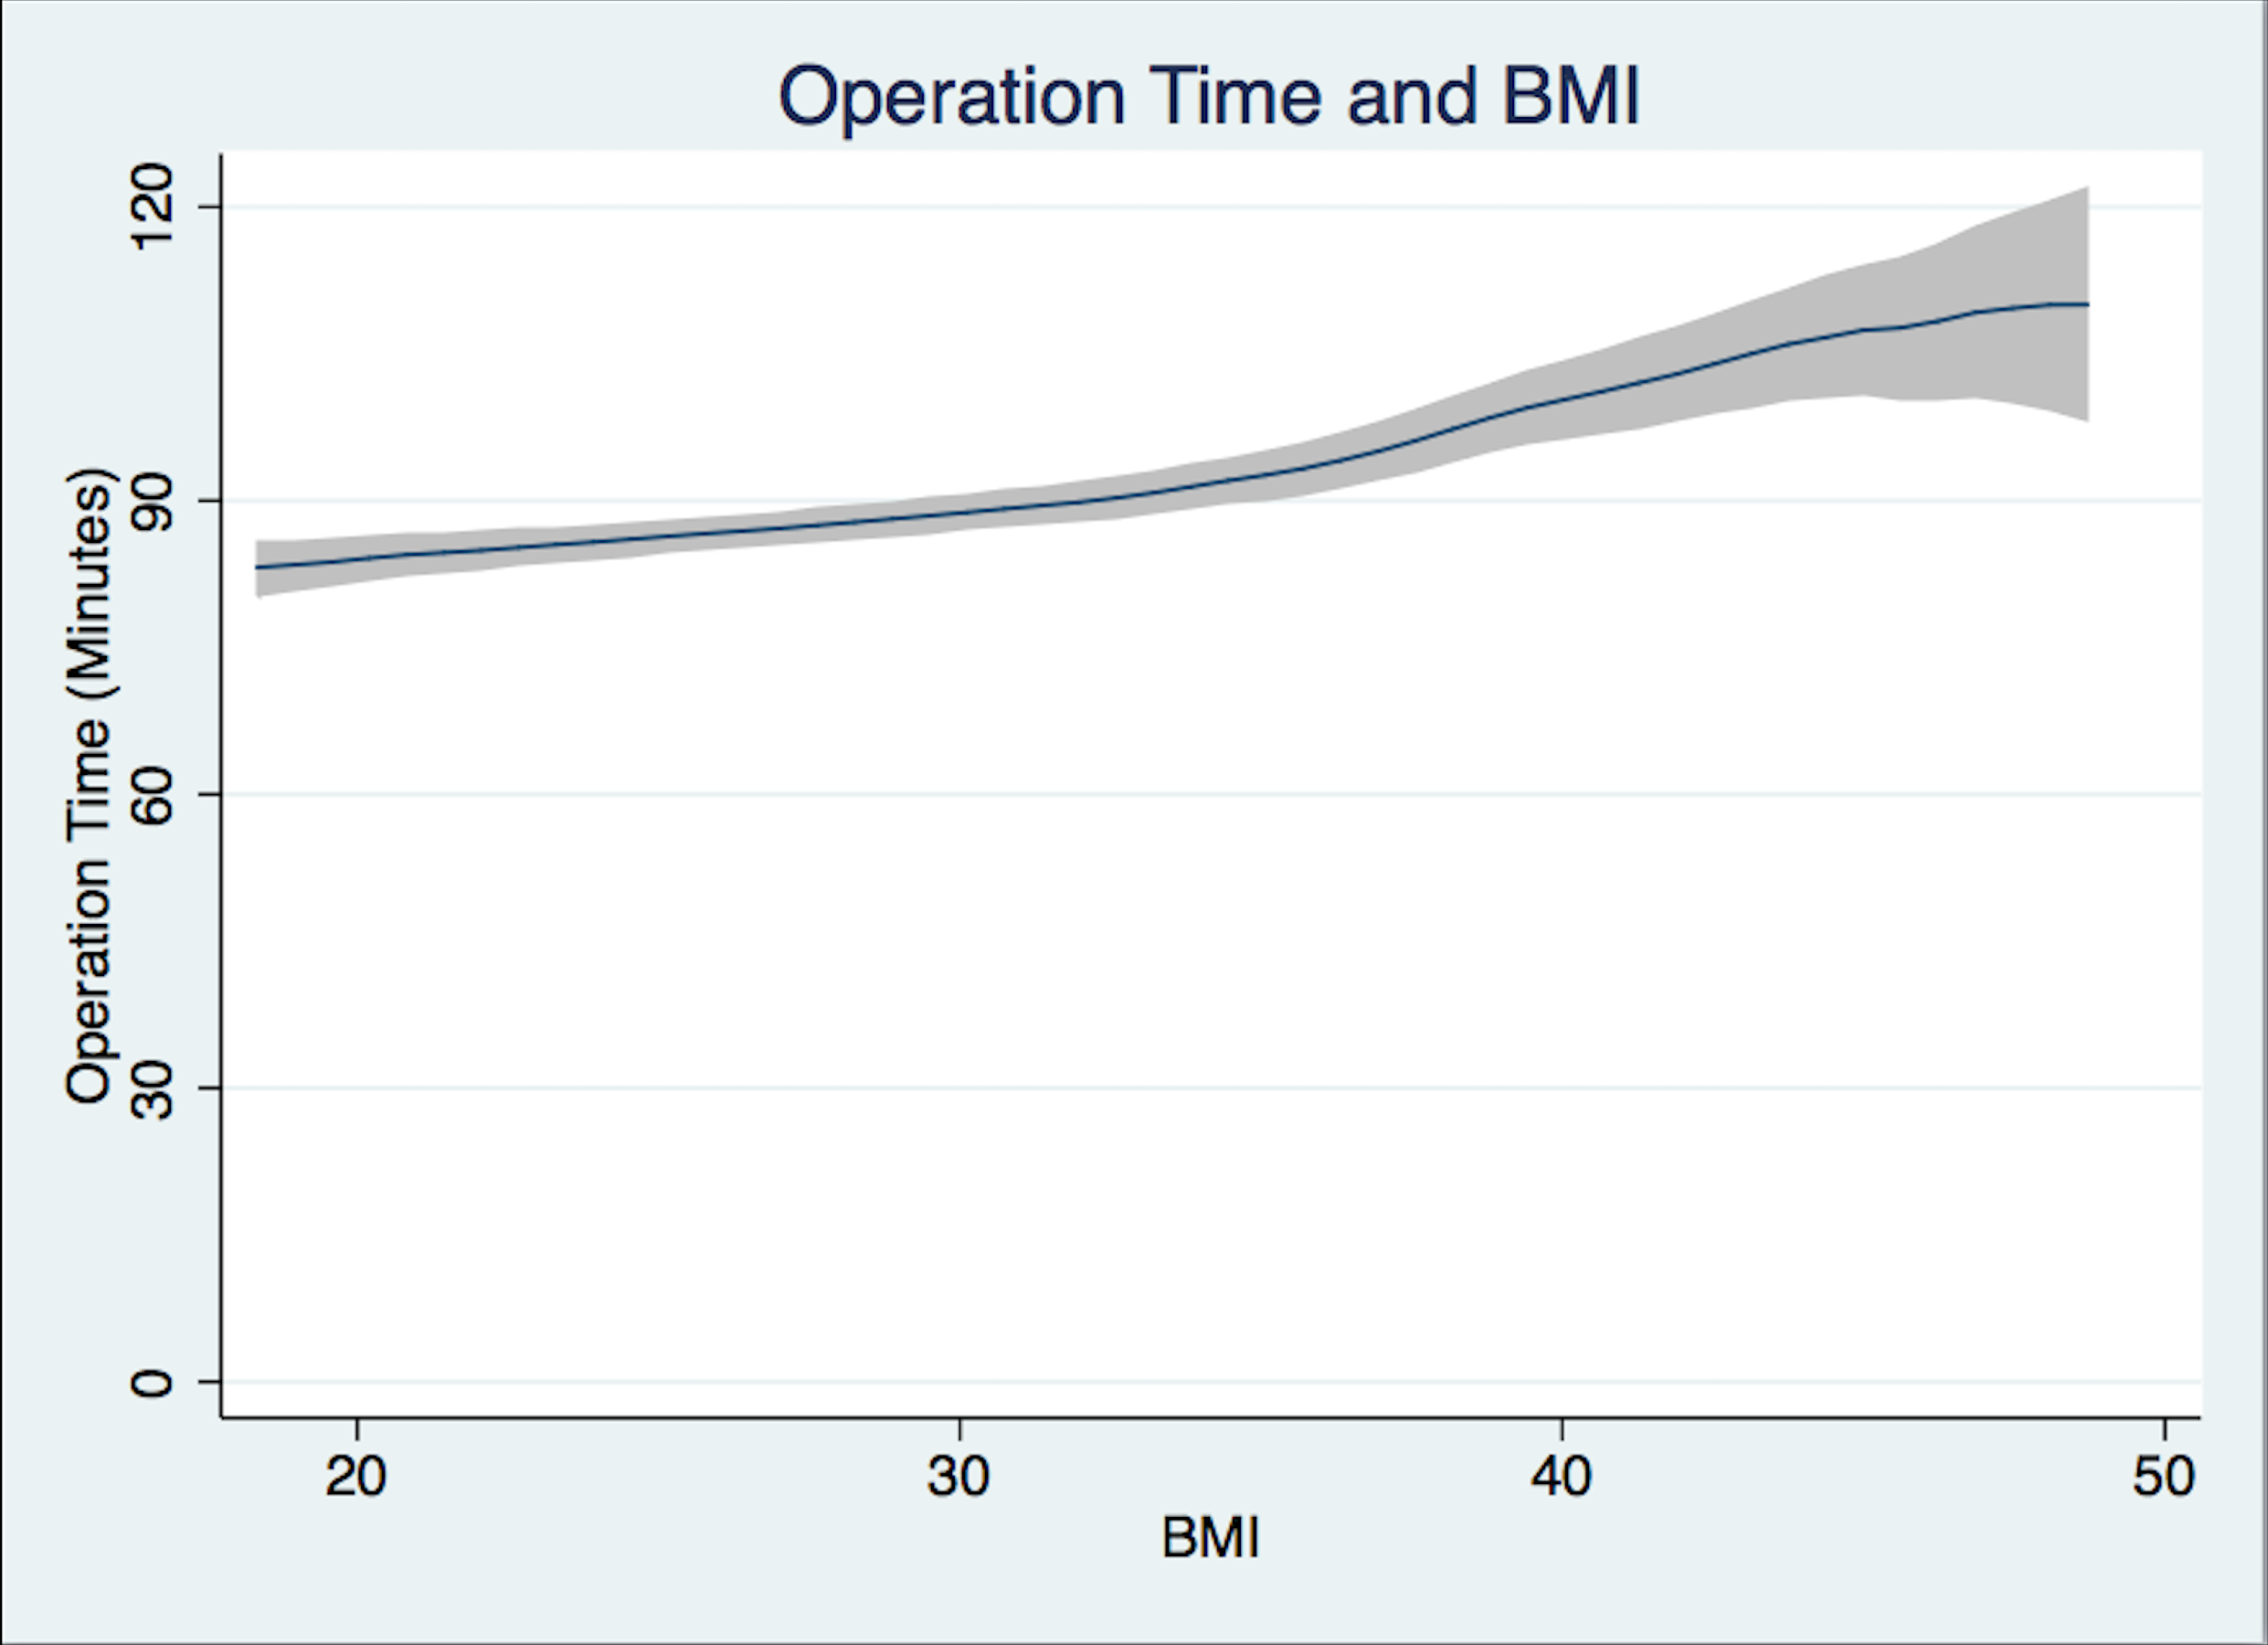 Obesity increases operating room times in patients undergoing download full size image nvjuhfo Choice Image